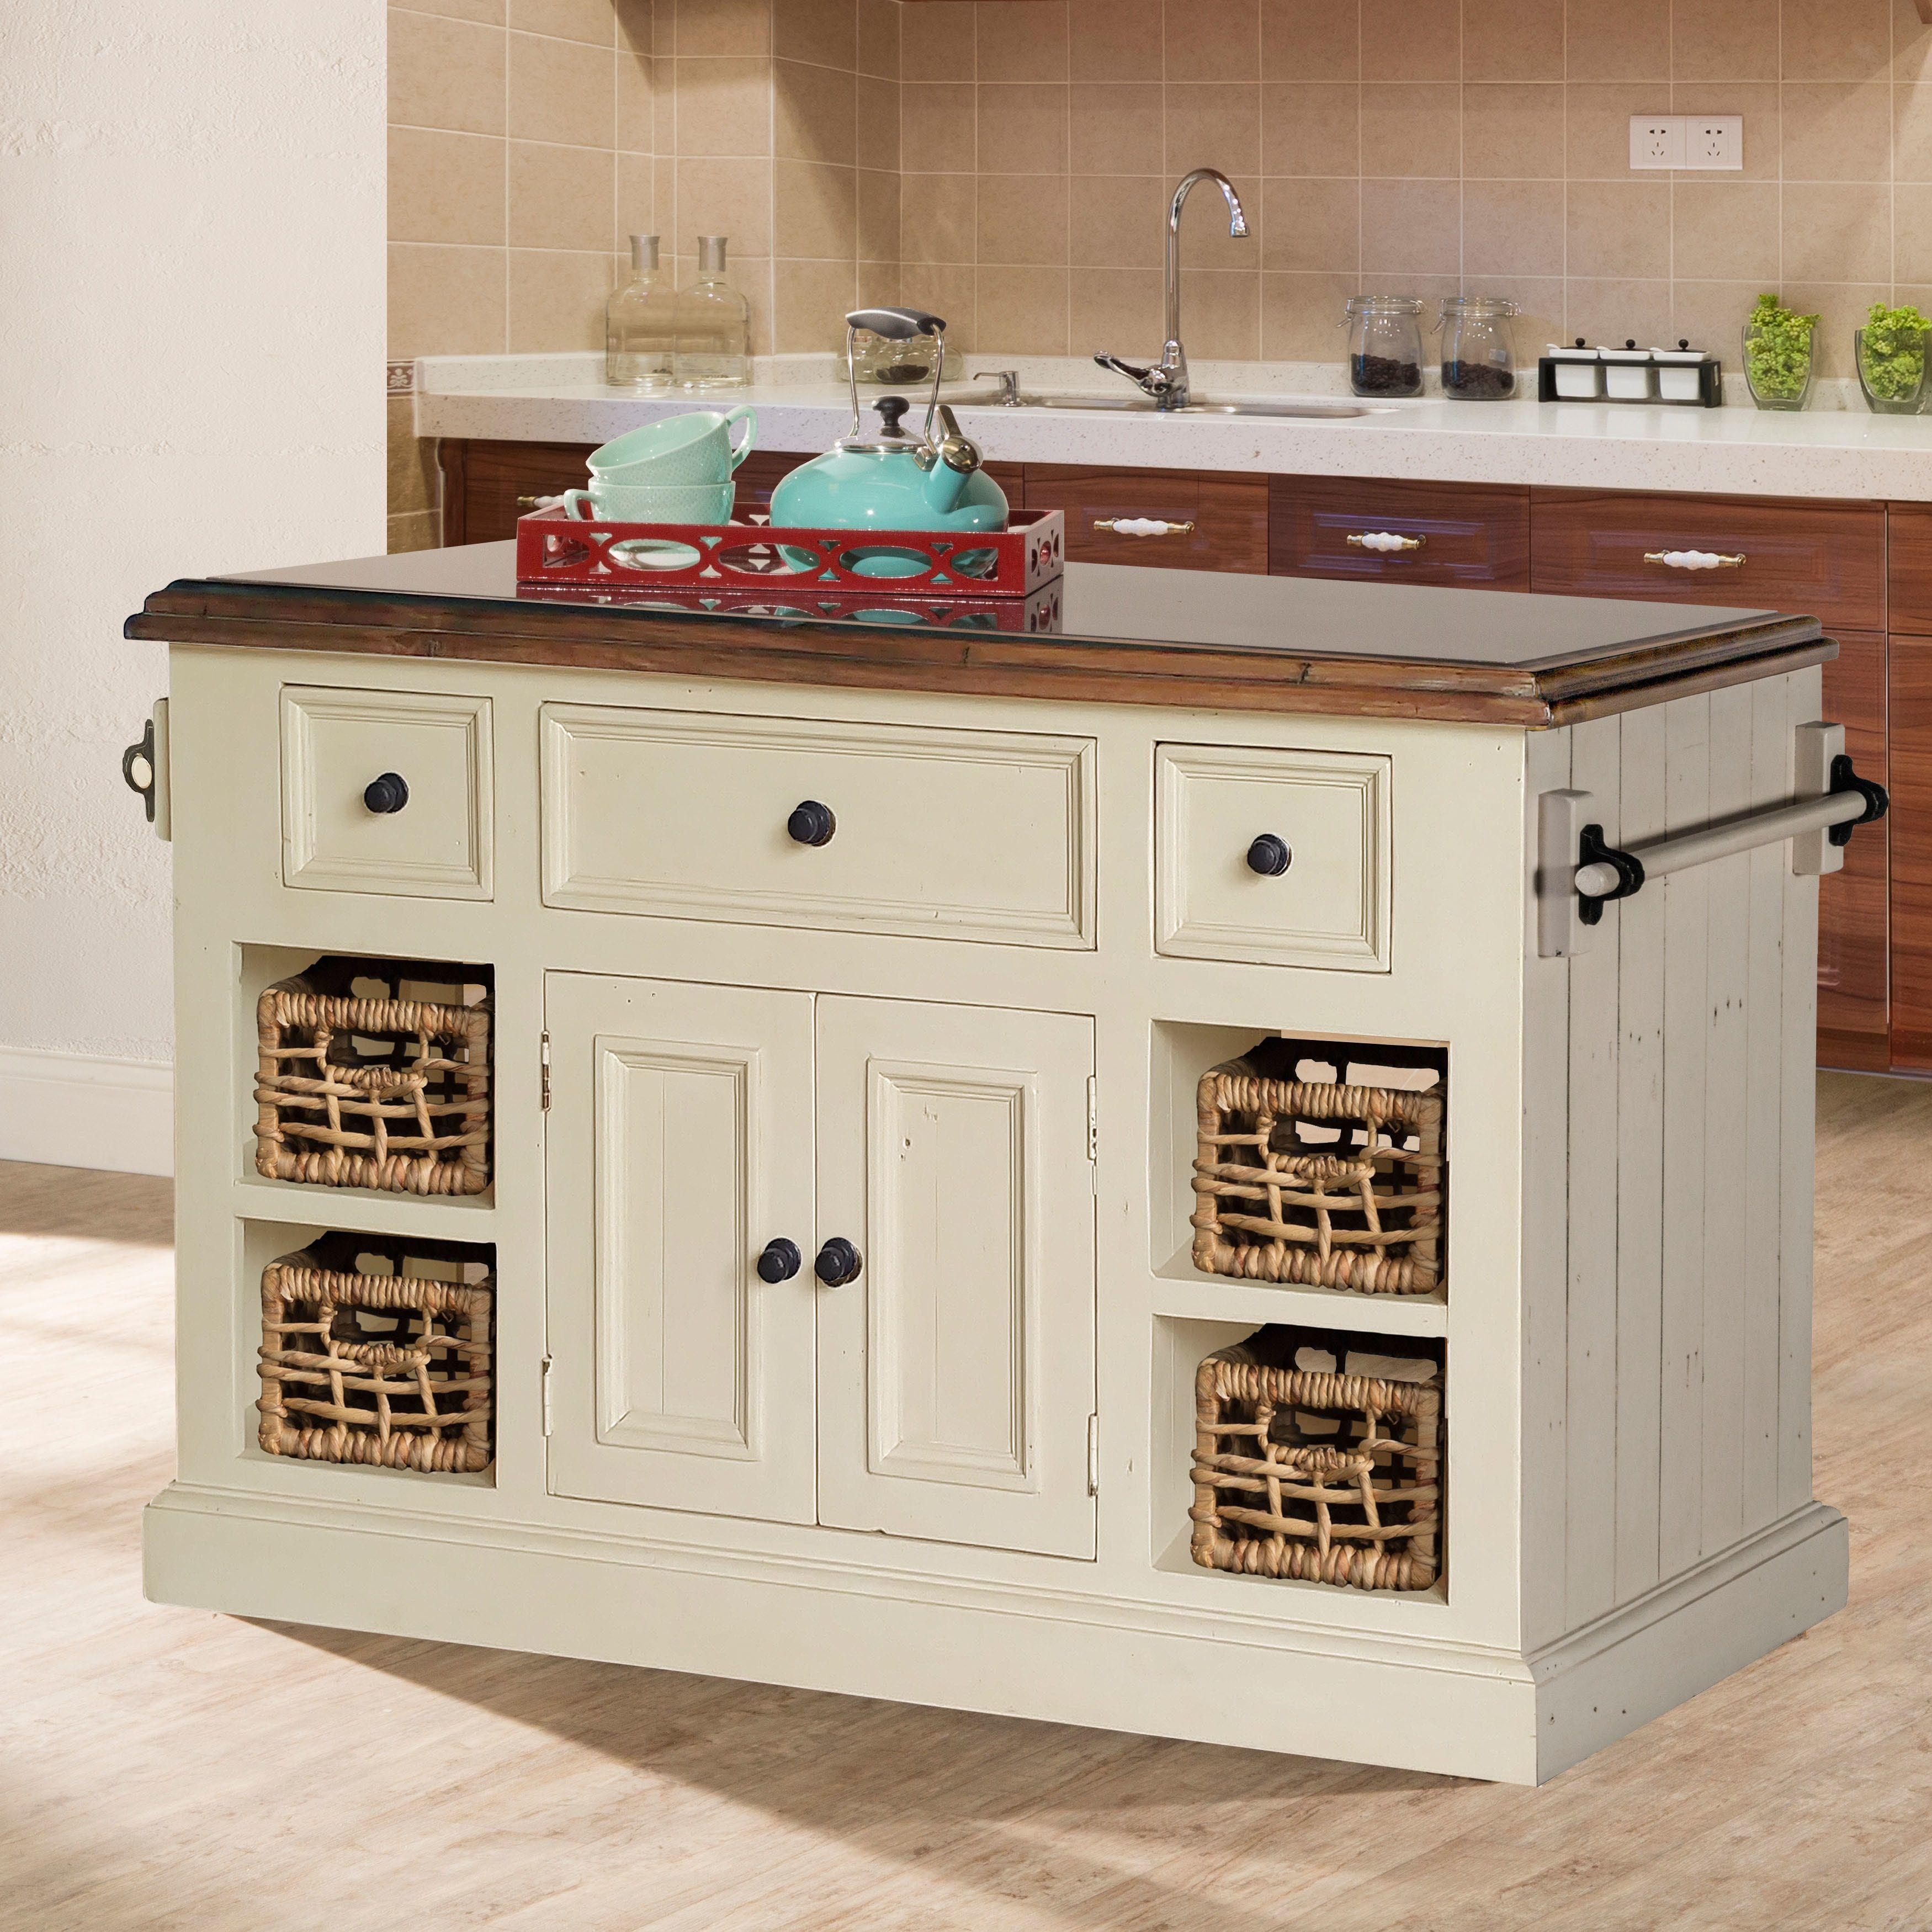 Overstock Com Online Shopping Bedding Furniture Electronics Jewelry Clothing More Kitchen Tops Granite Antique Kitchen White Kitchen Island